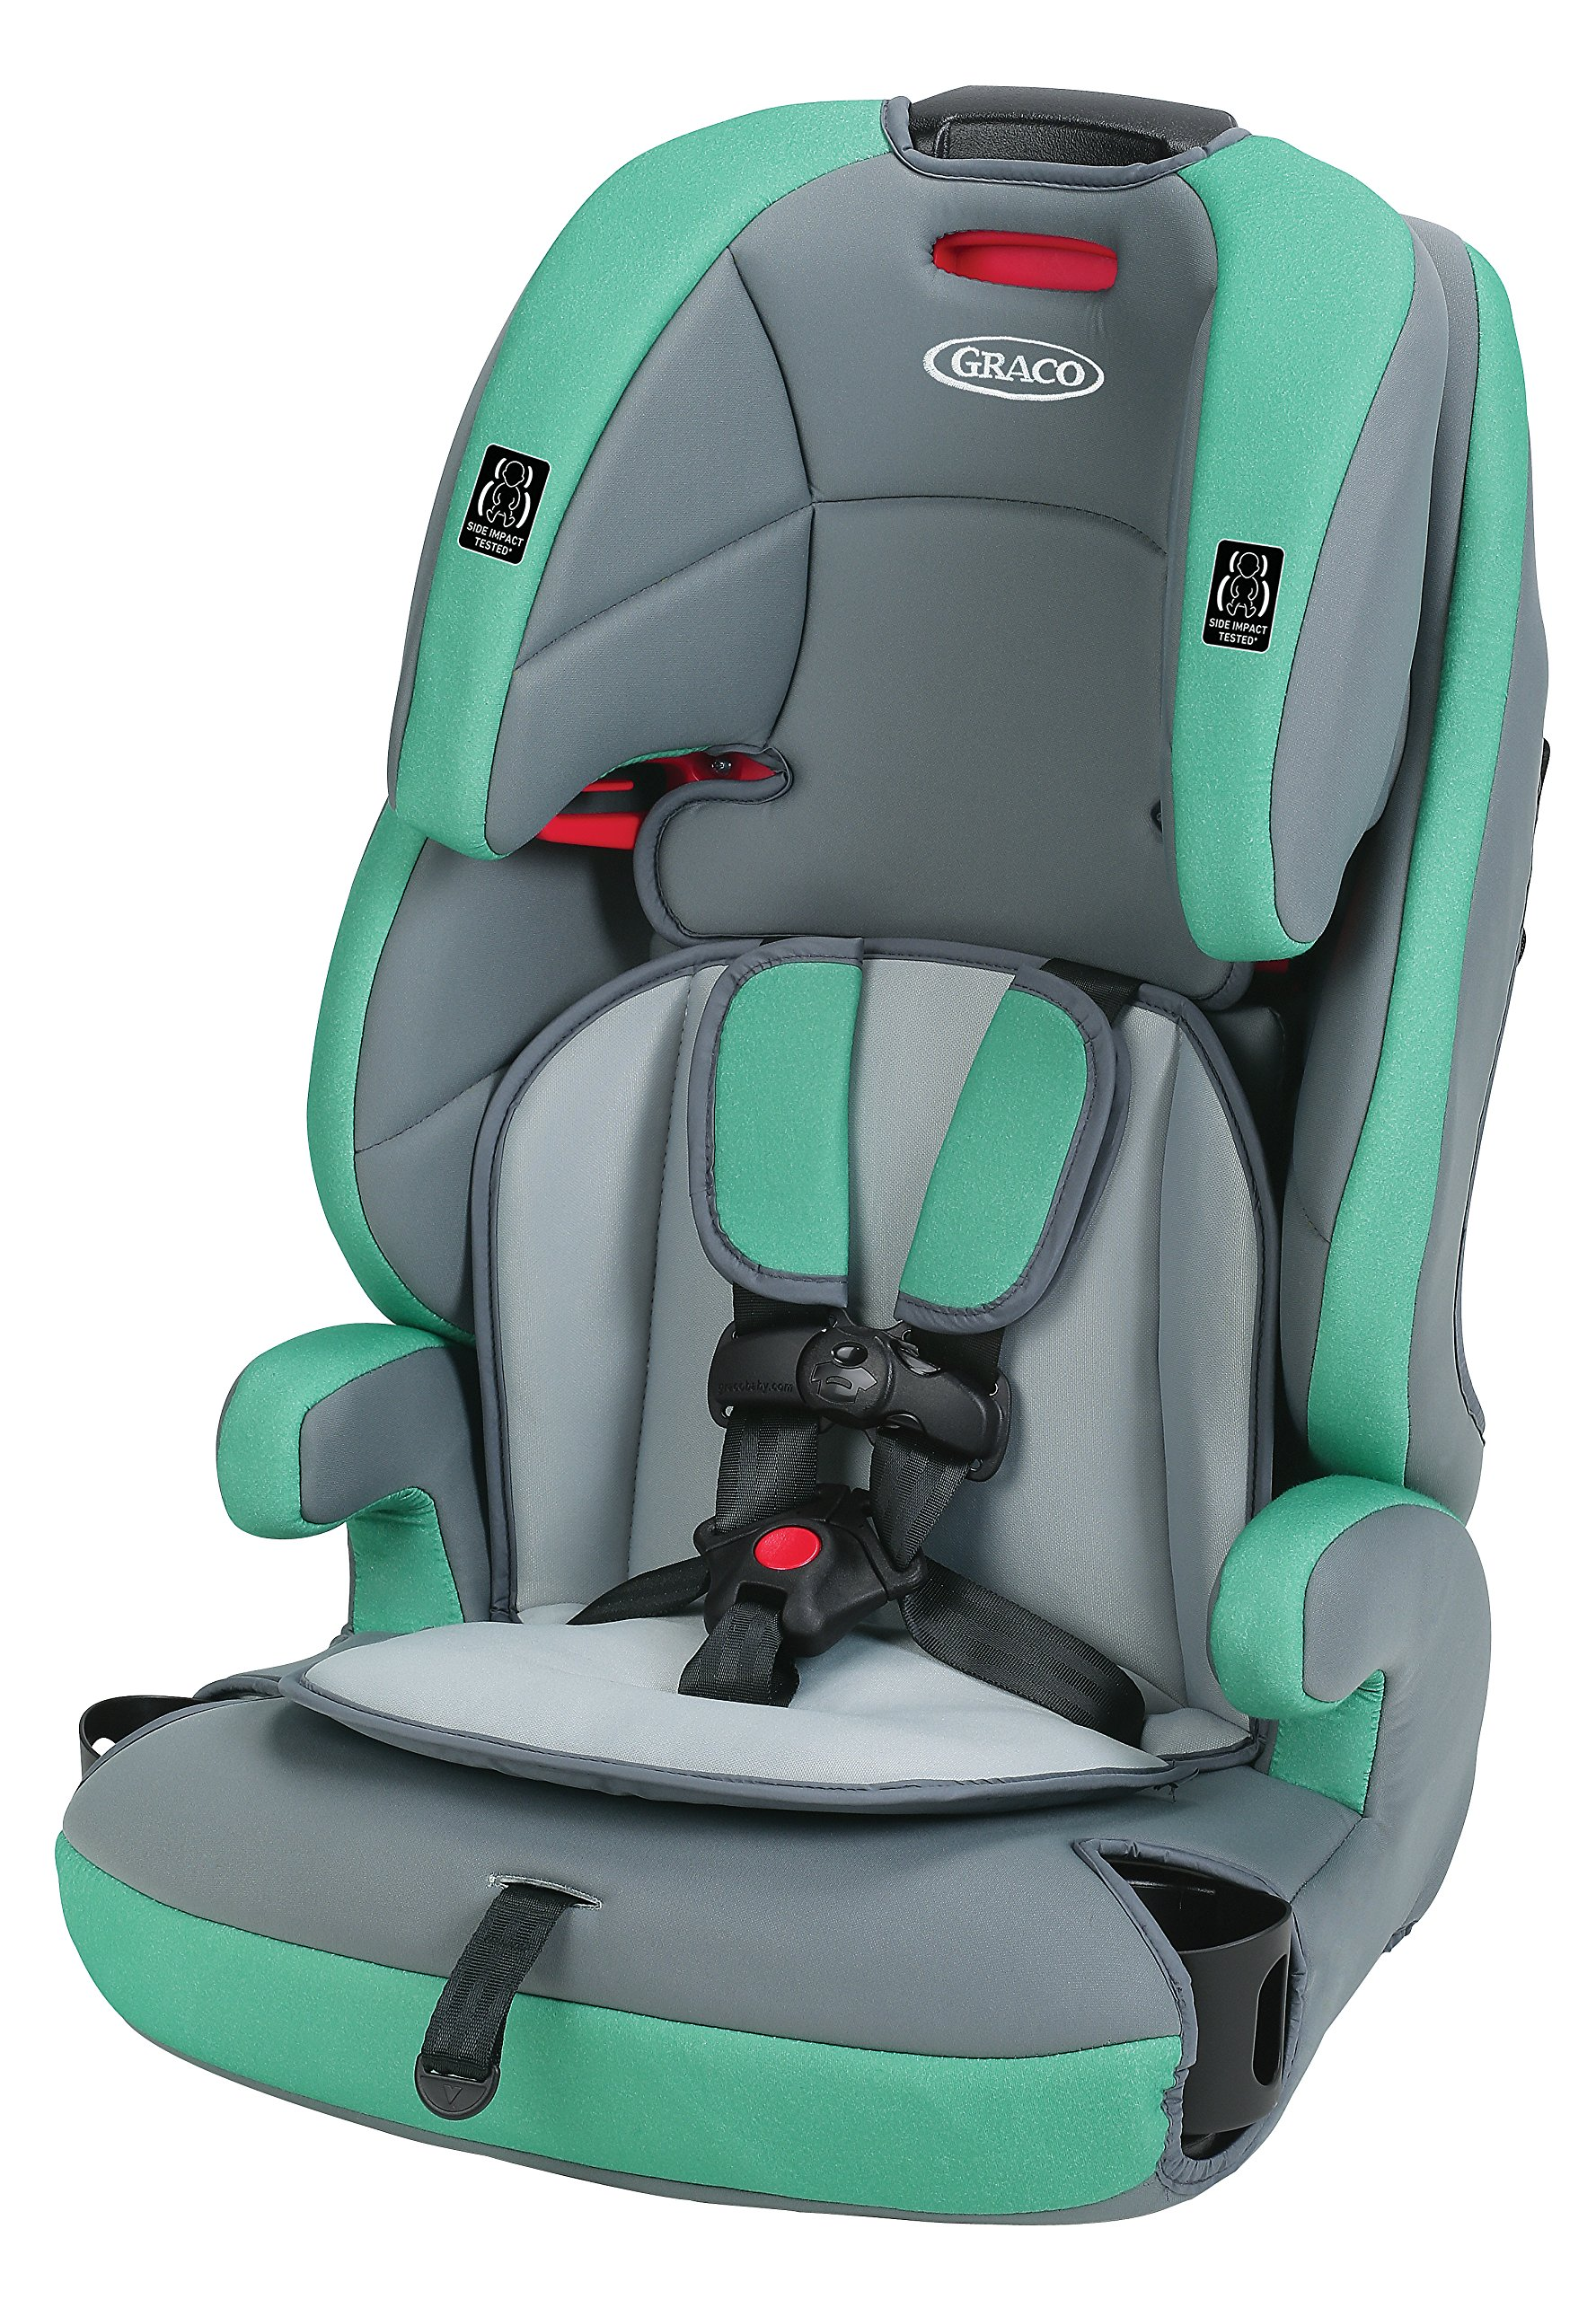 Graco Tranzitions 3-in-1 Harness Booster Convertible Car Seat, Basin by Graco (Image #1)